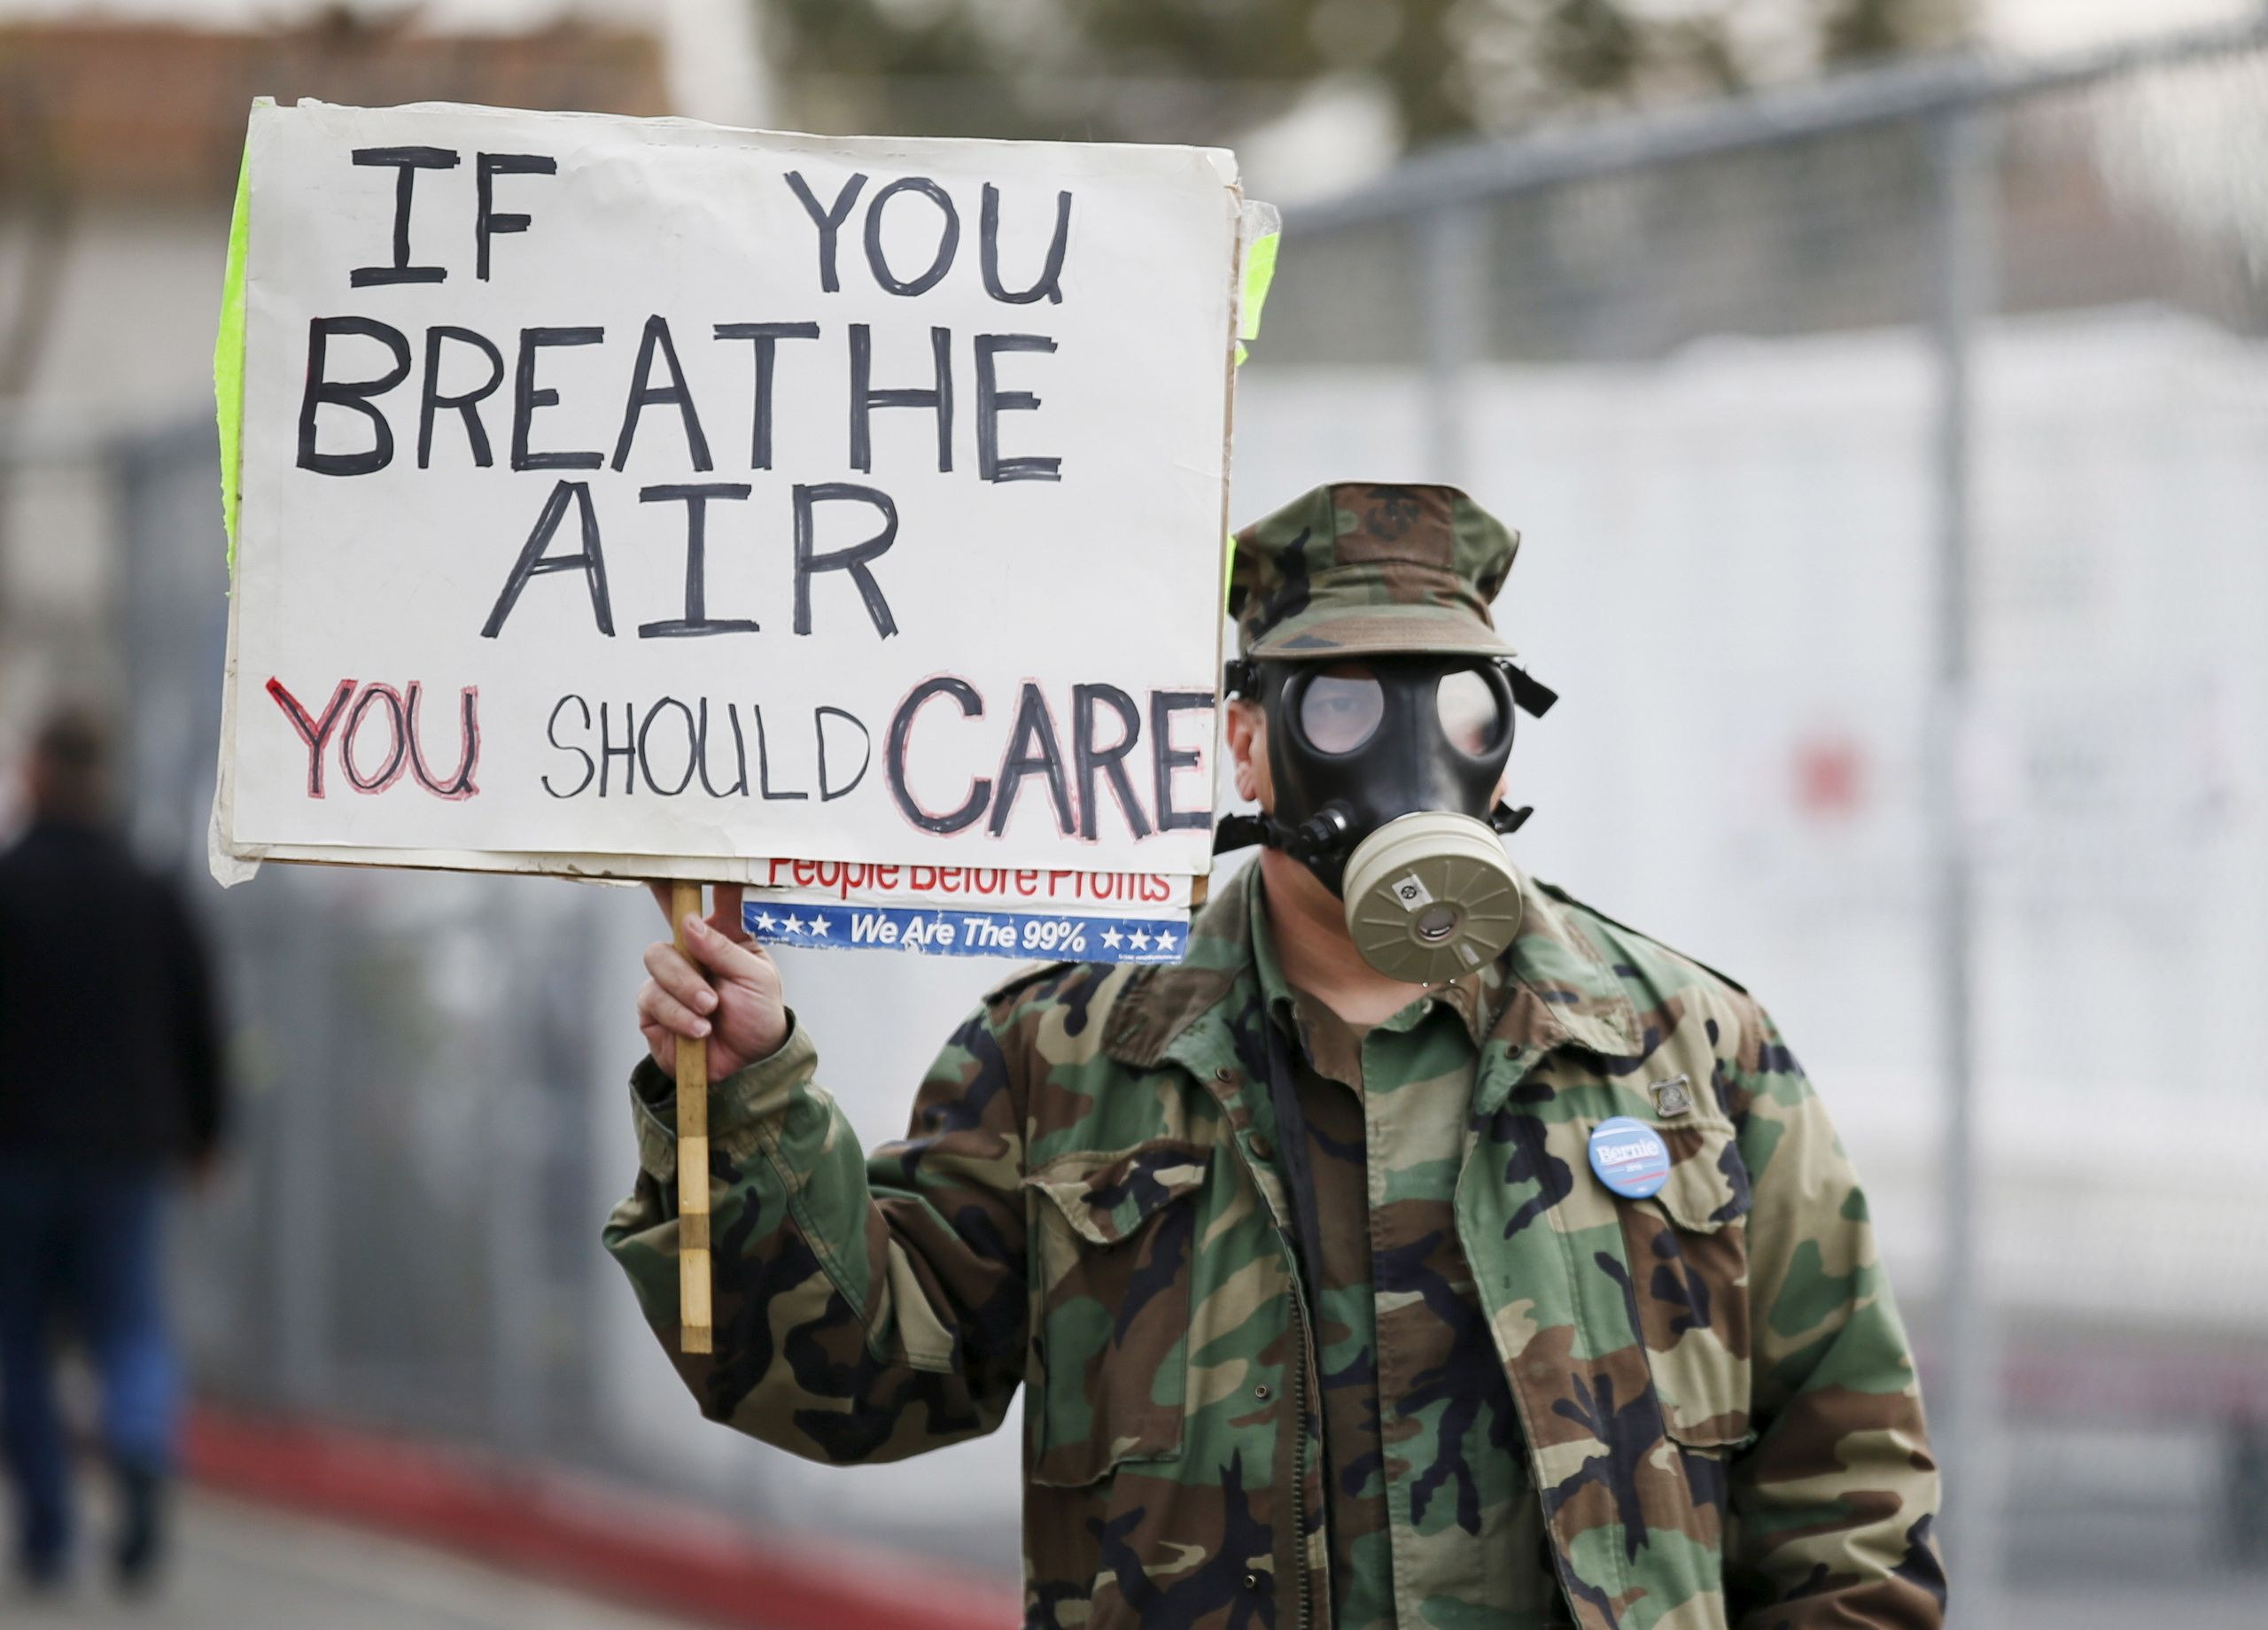 Air quality has dramatically improved in Los Angeles in recent decades. A protester, seen above, picketed in 2016 following a